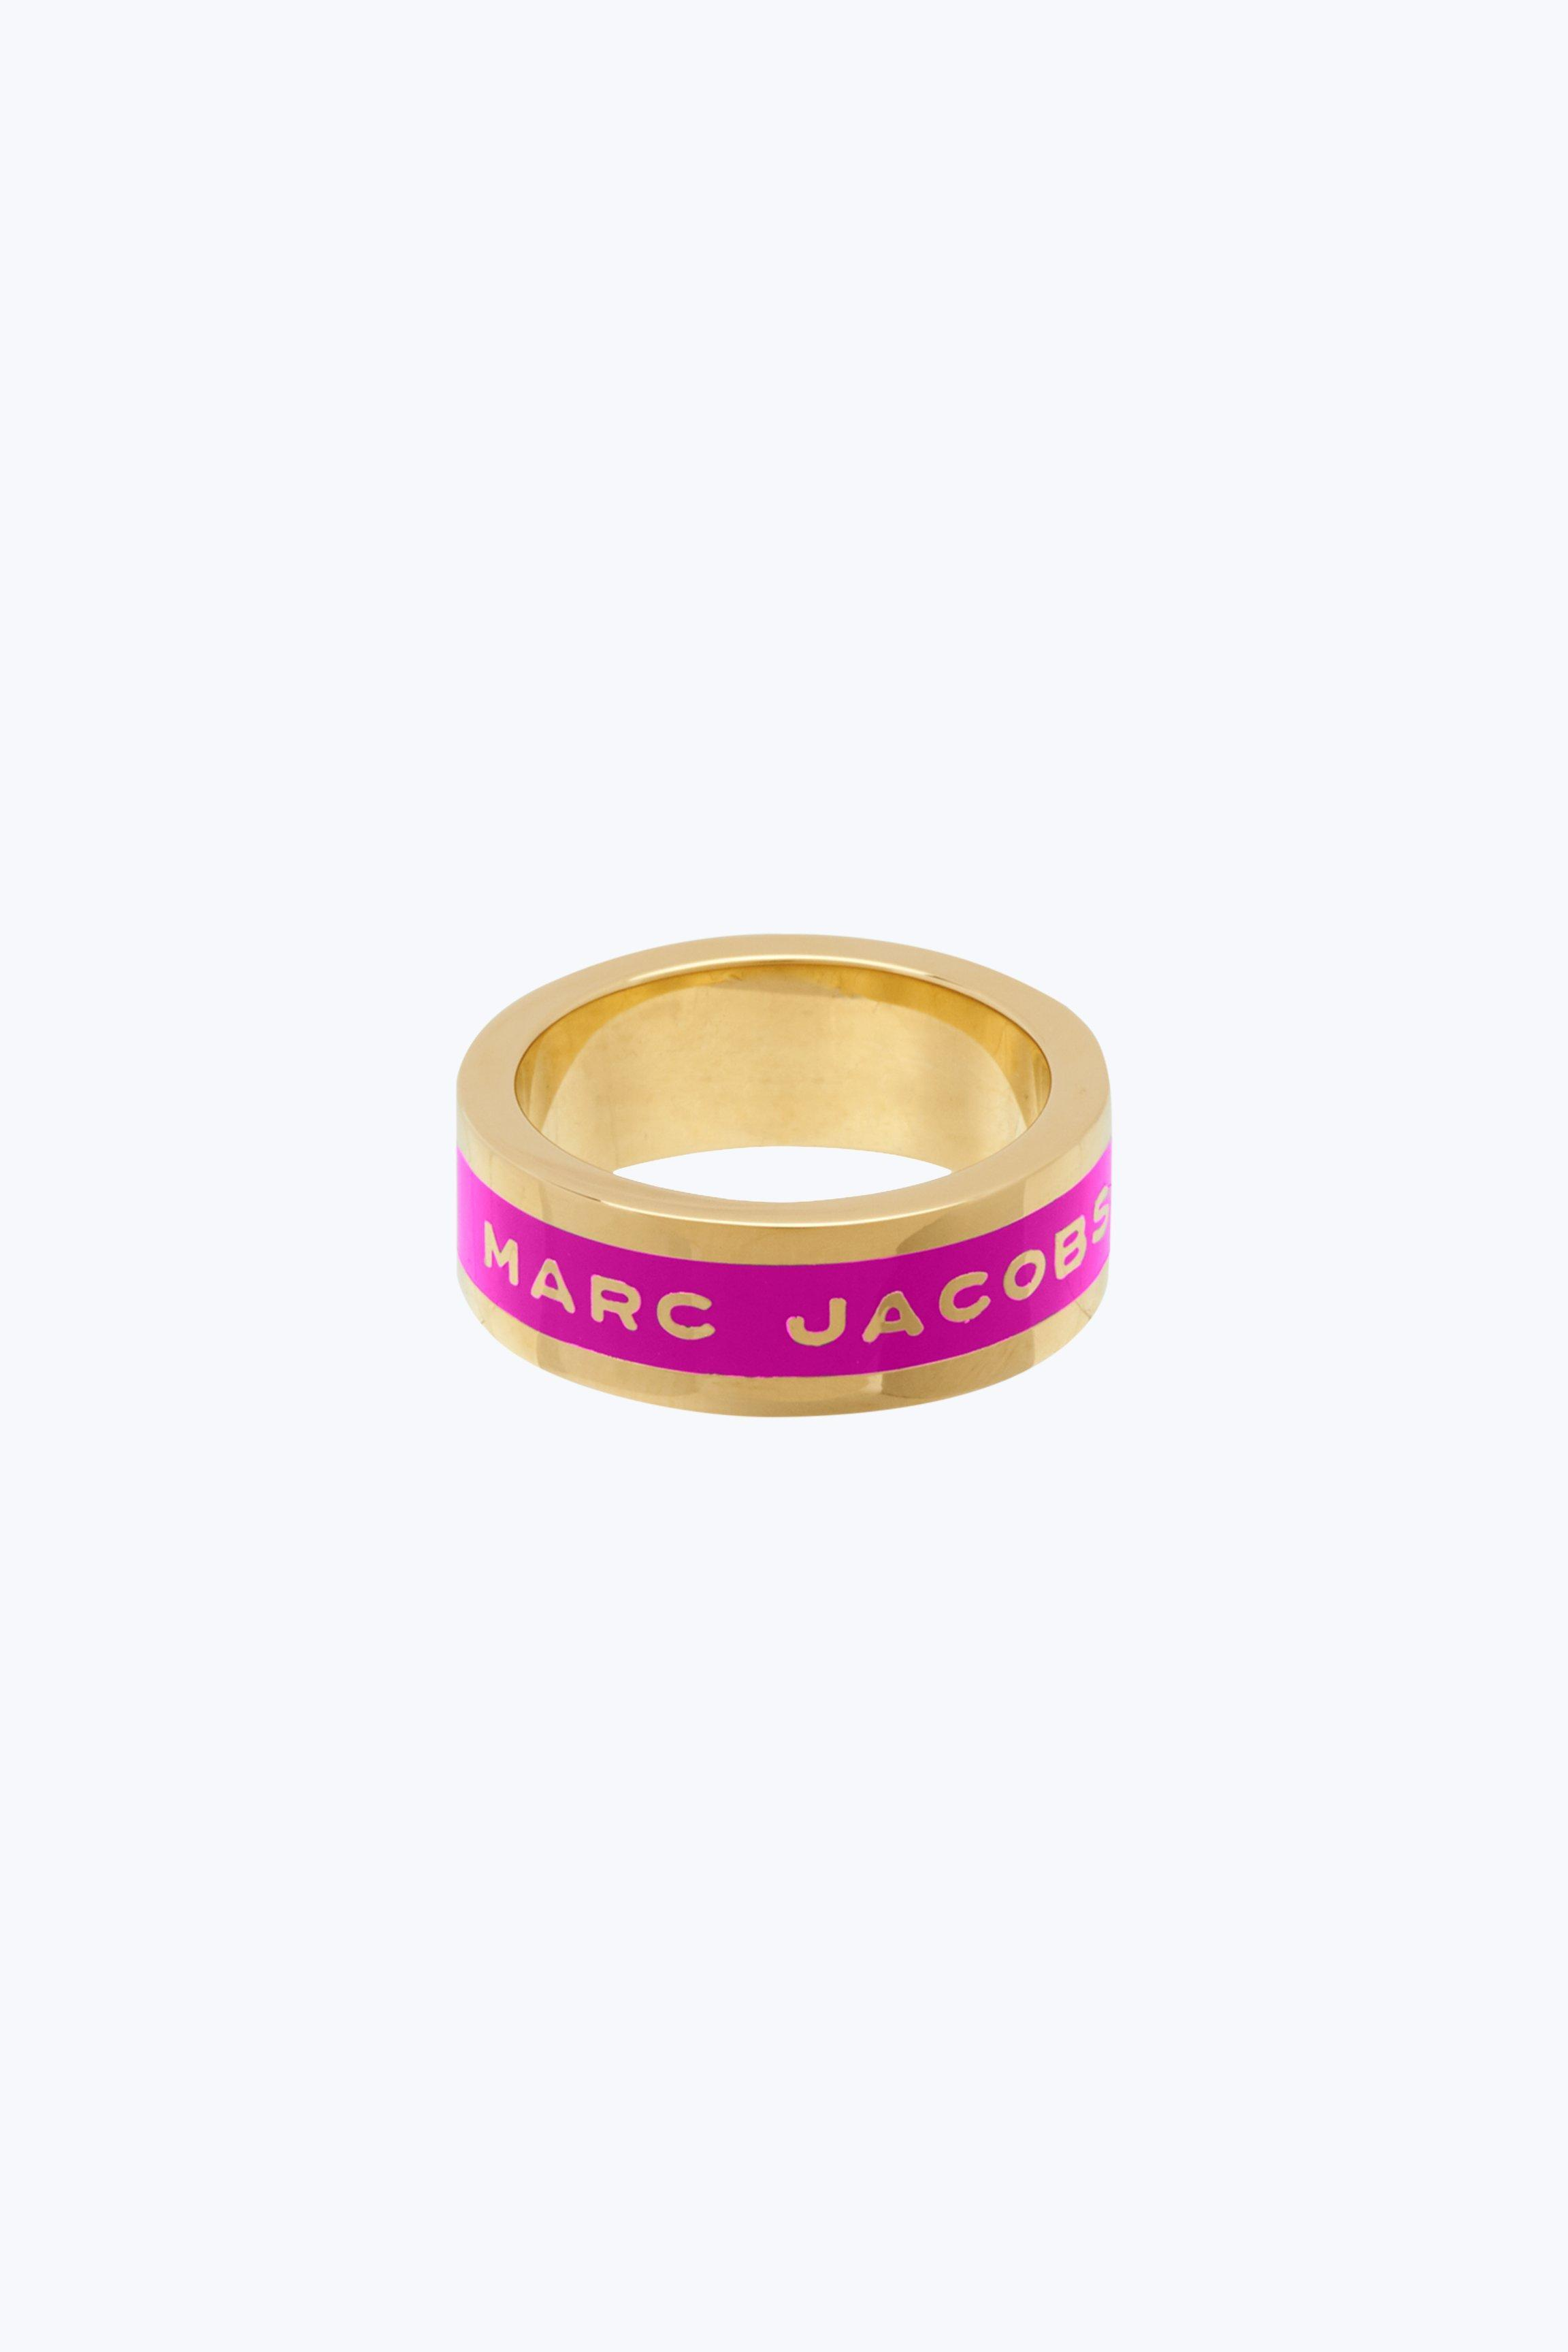 marc jacobs logo disc band ring in neon pink modesens modesens